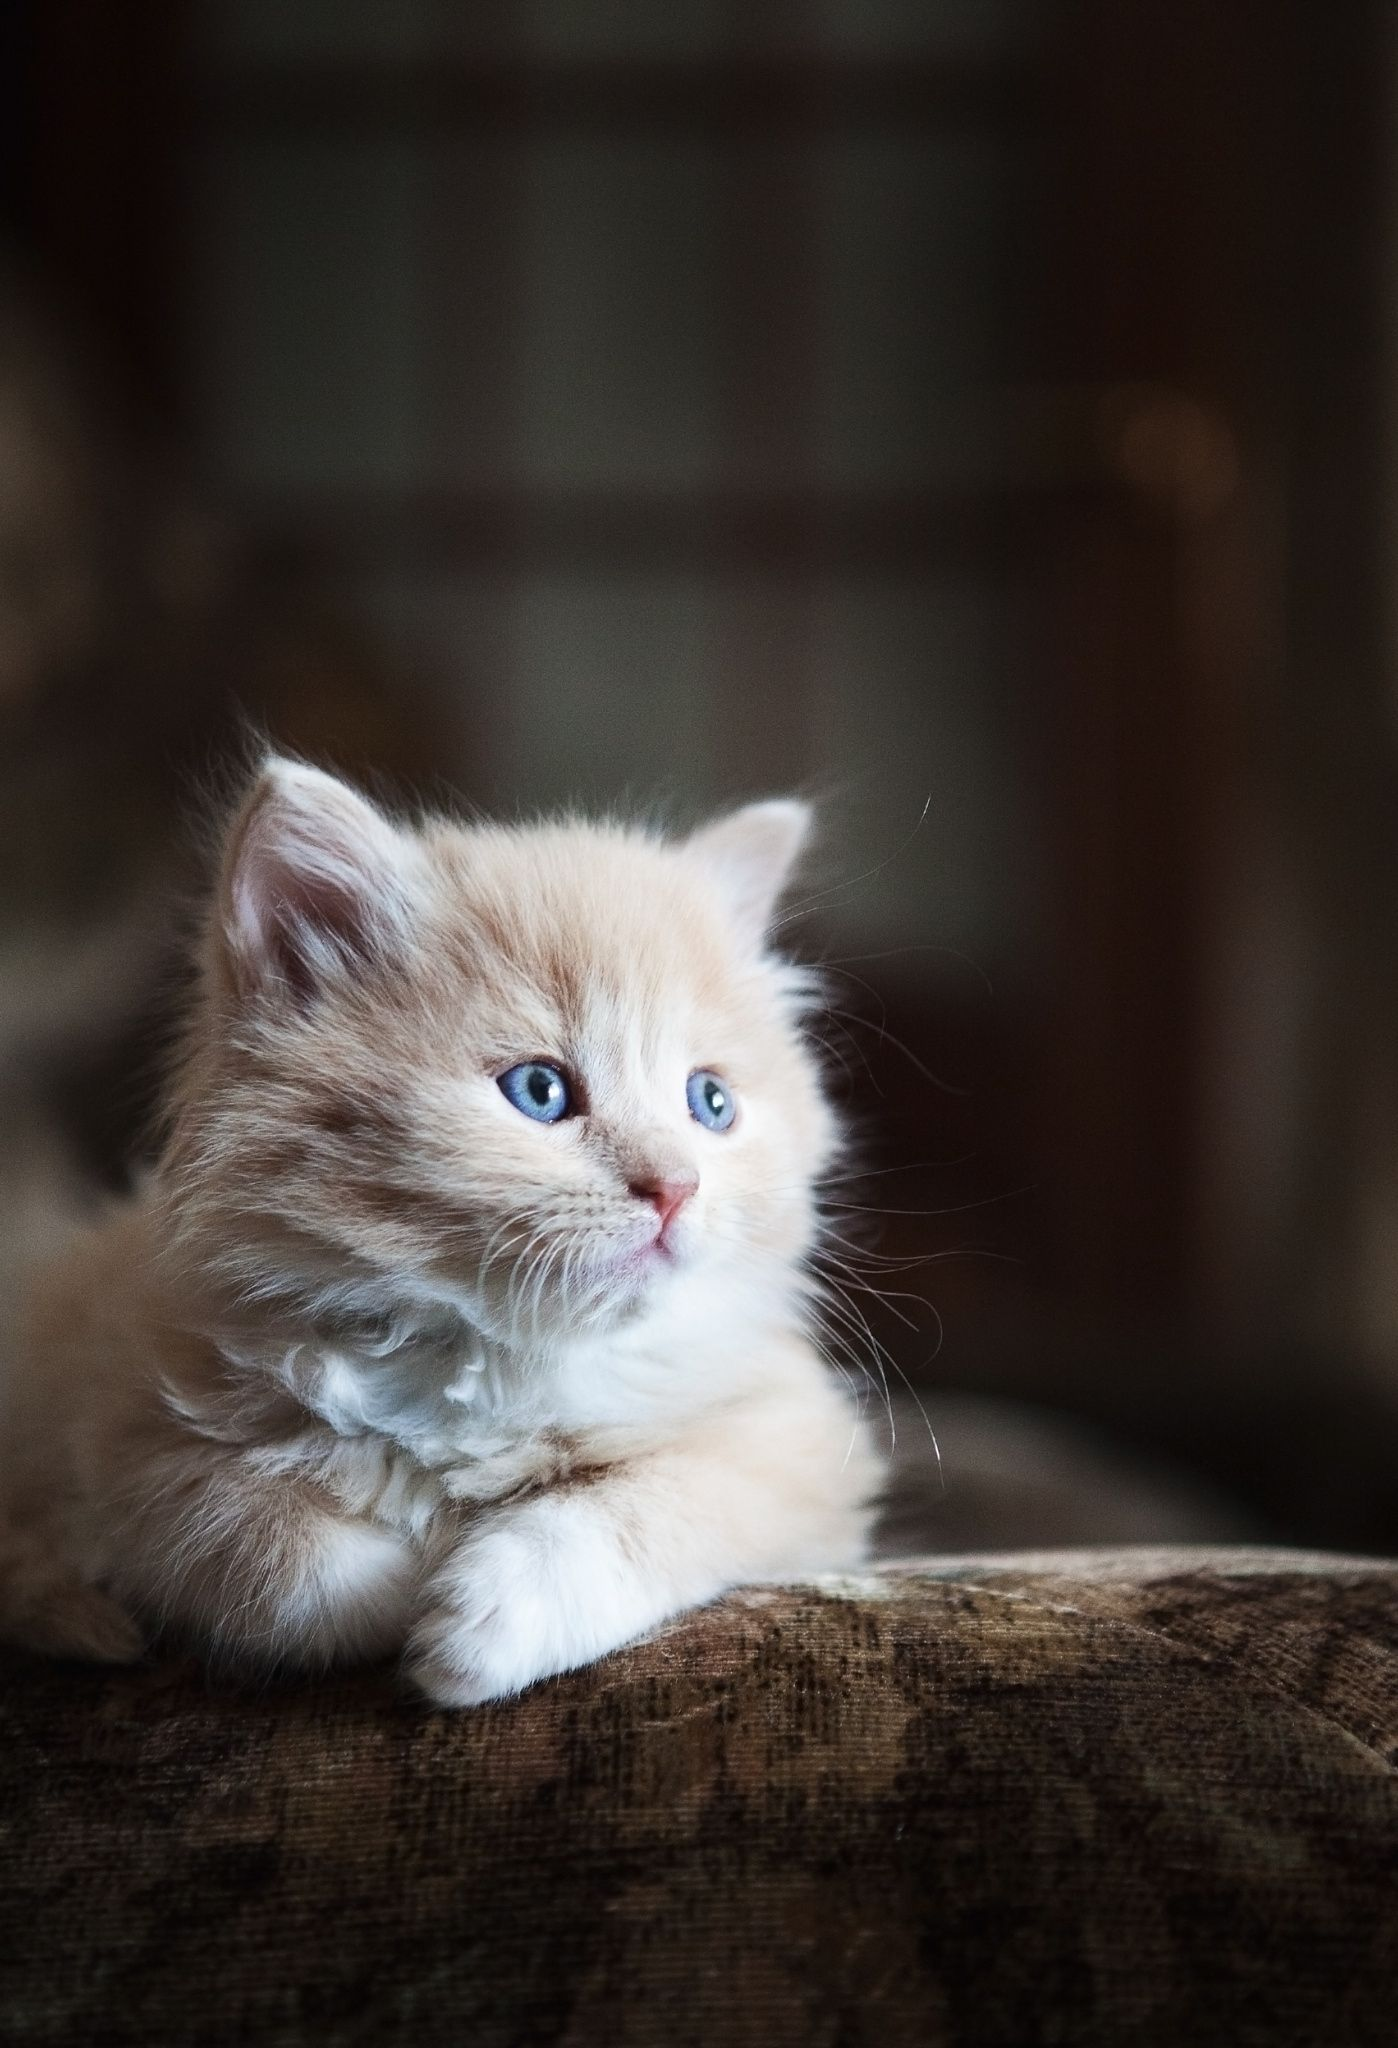 Cat by Yriy Mikheev on 500px Cats, Cute cats, Cute small